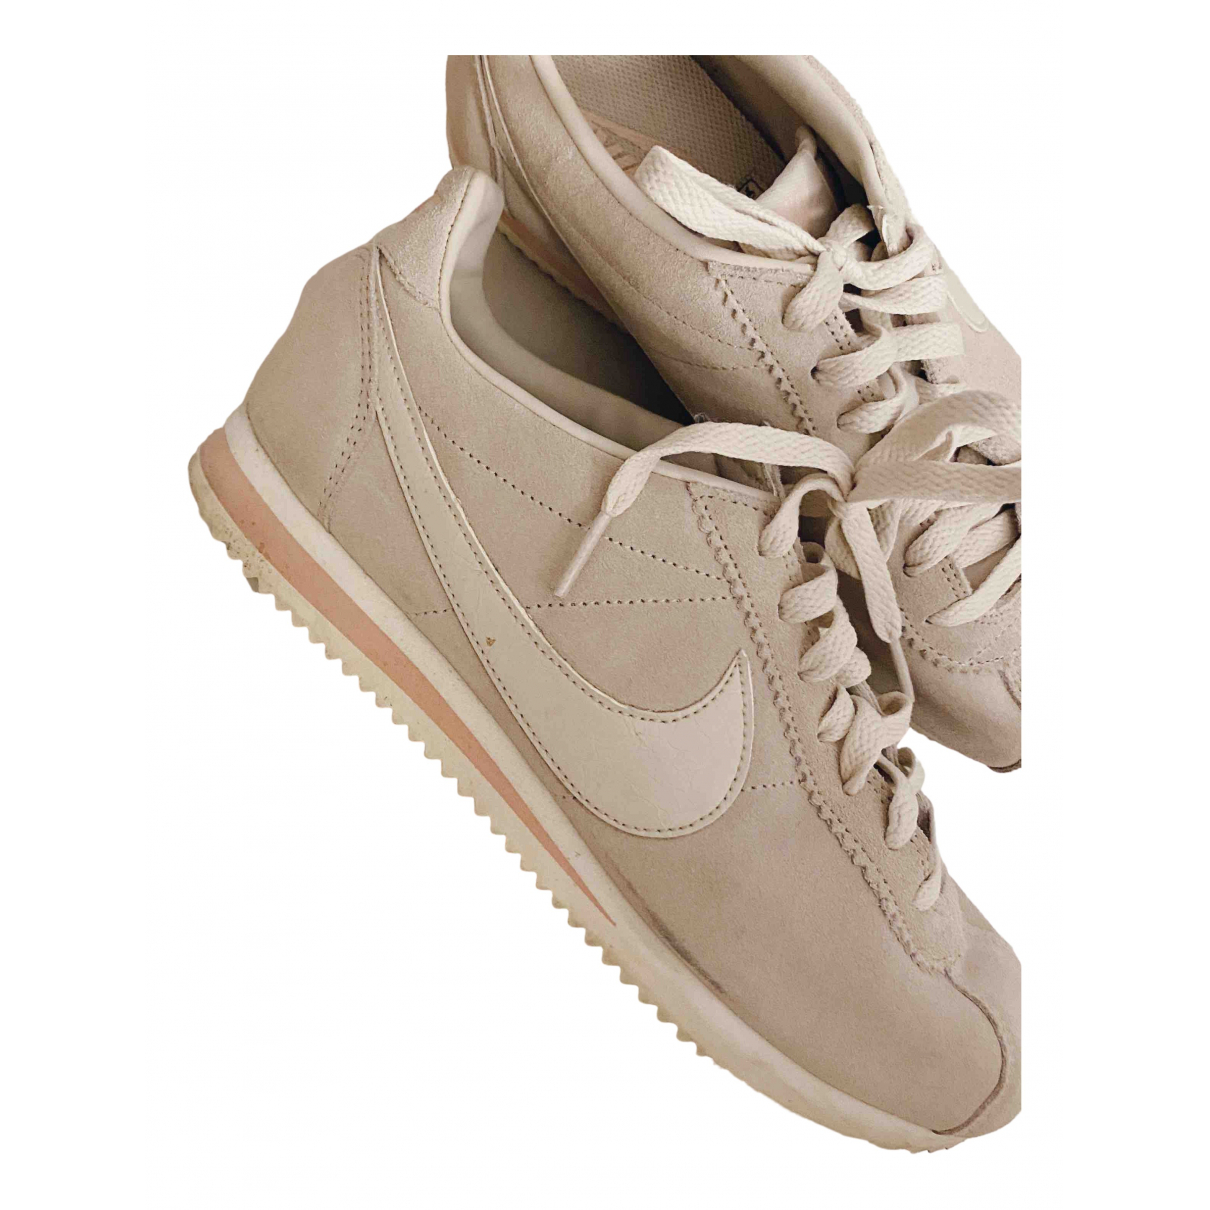 Nike Cortez Pink Leather Trainers for Women 40 EU